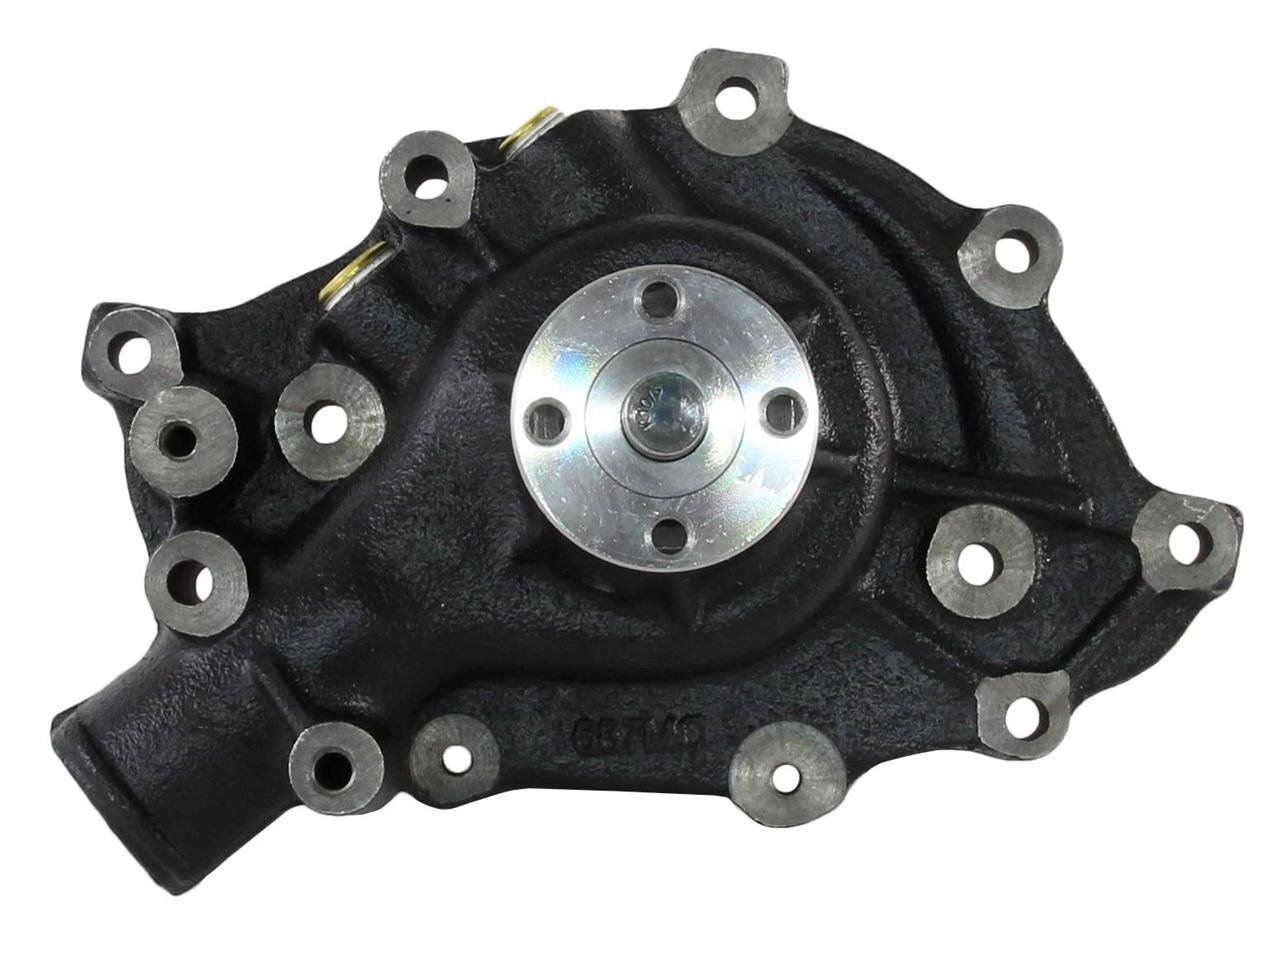 NEW WATER PUMP FITS FORD MARINE SMALL BLOCK V8 289 302 351 ENGINES OMC 18-3584 9-42607 WP520M 982517 71683A1 982517 by Rareelectrical